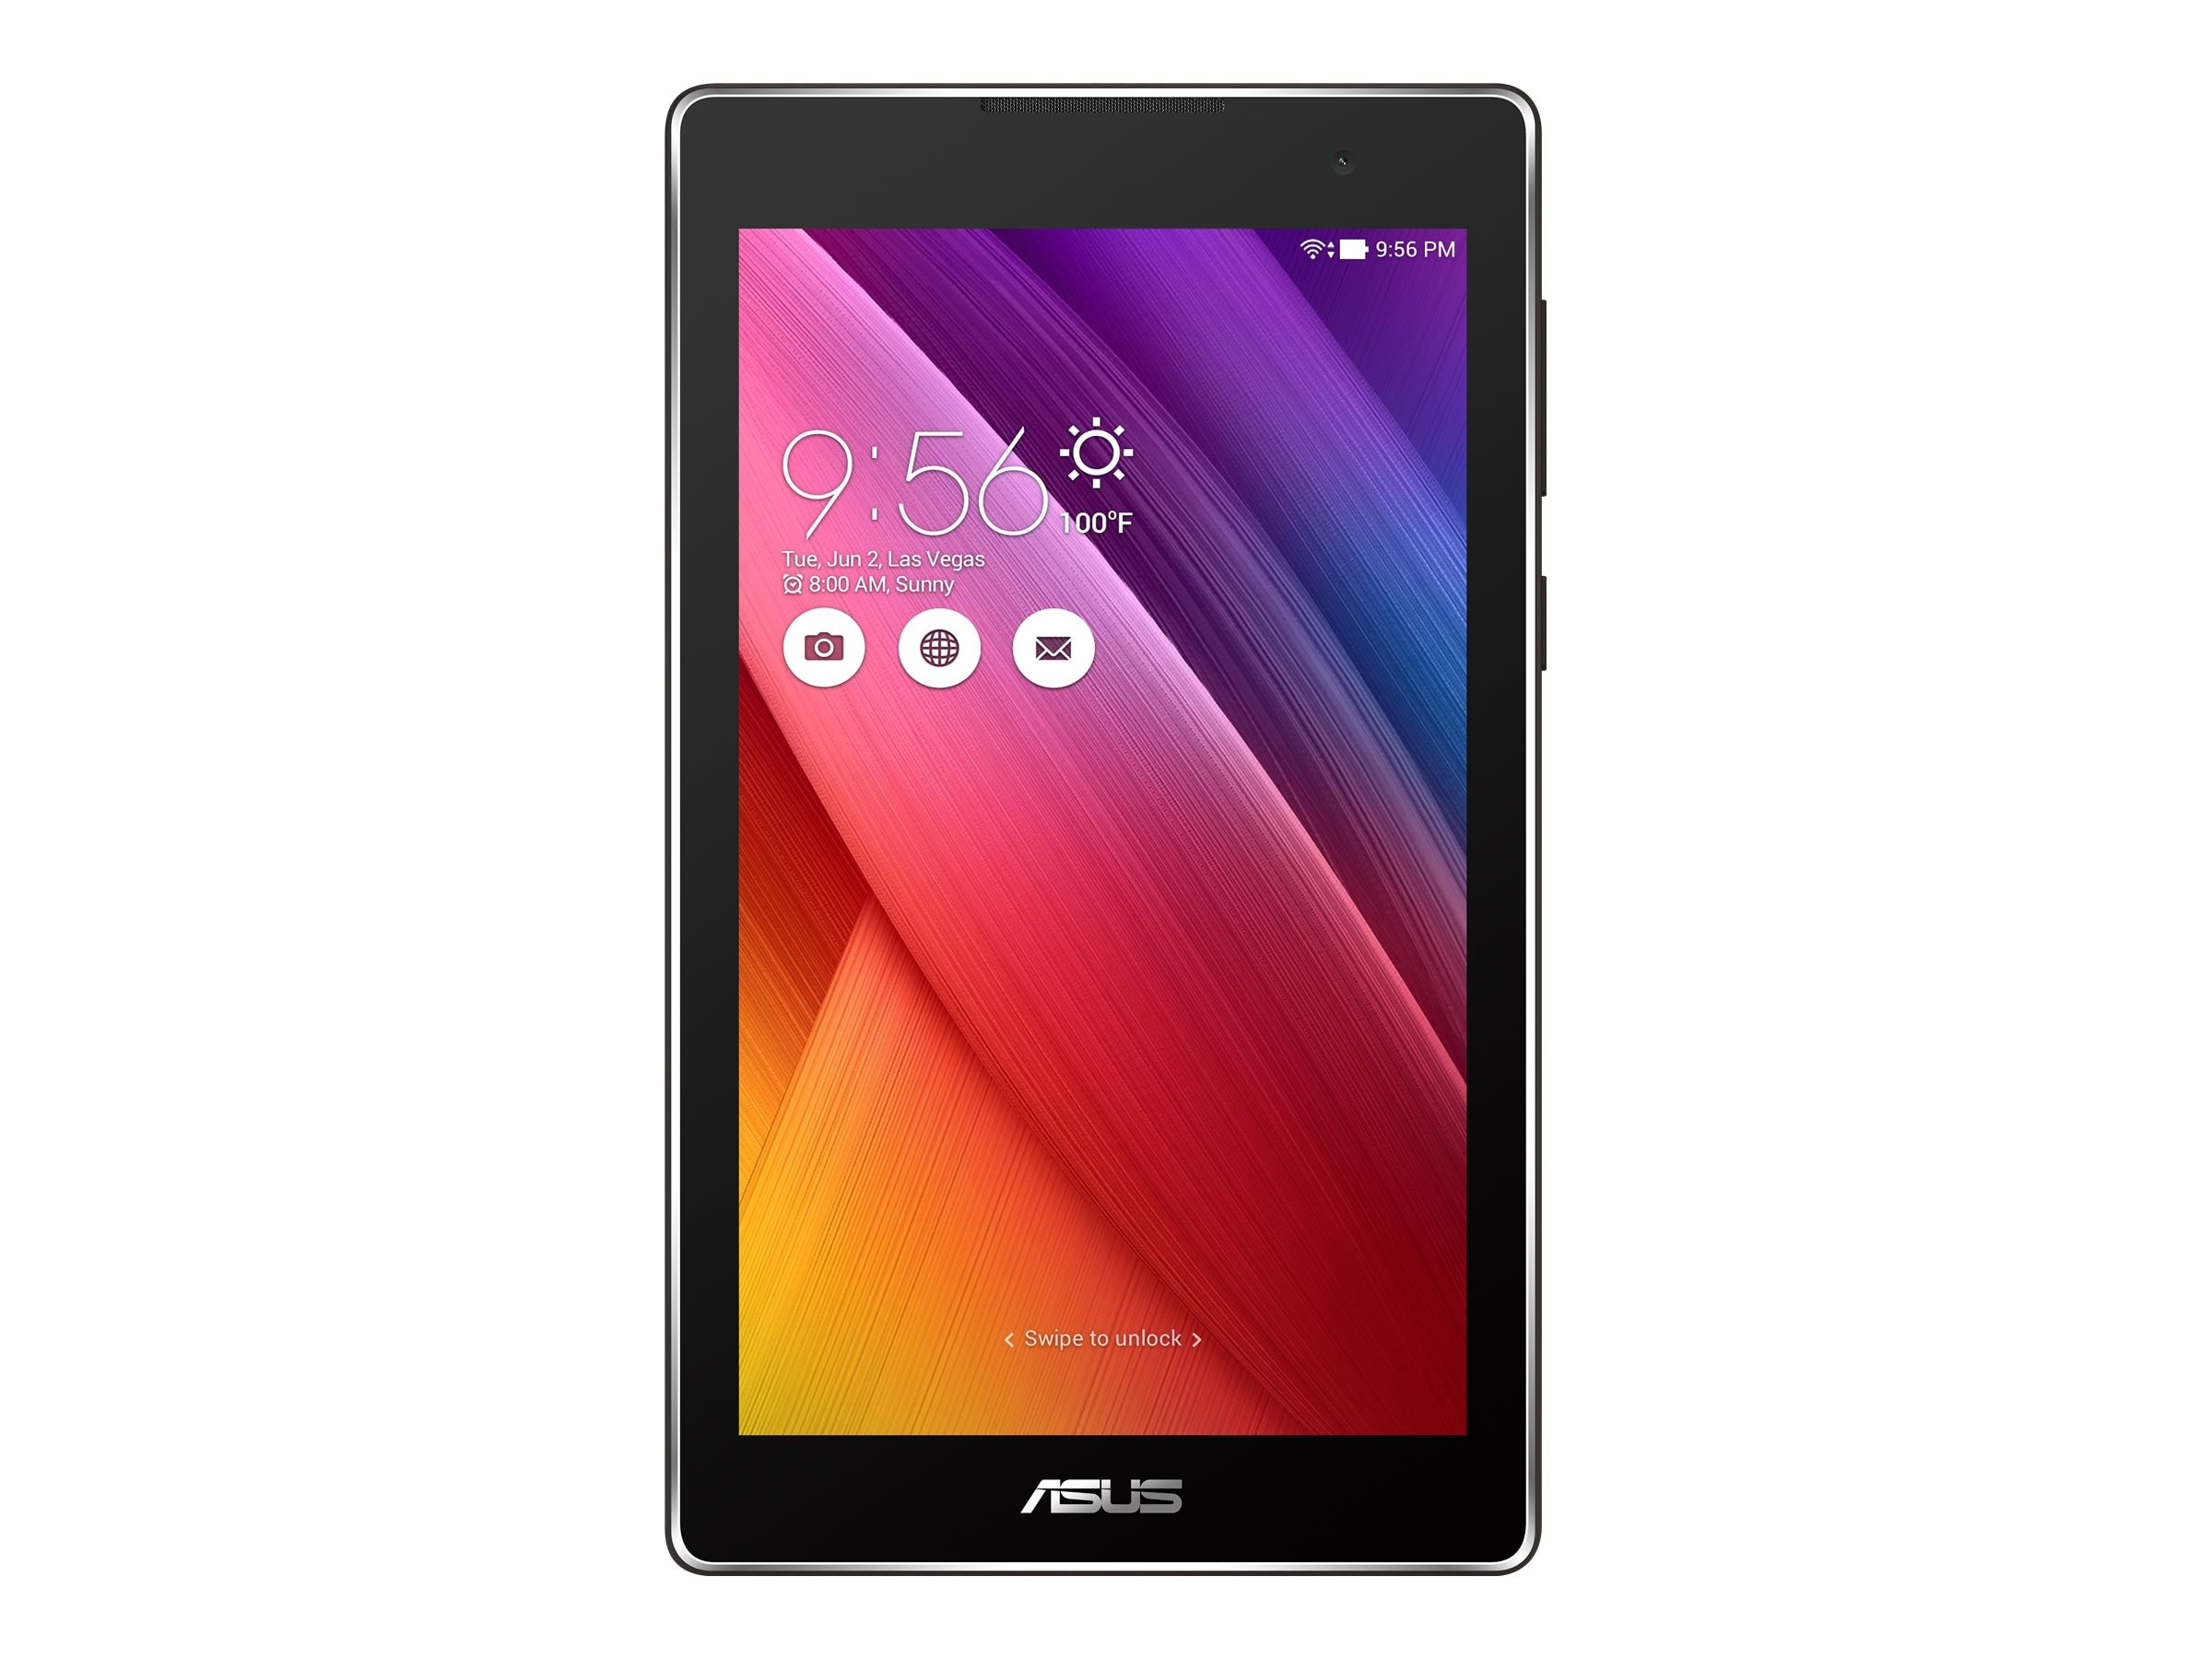 Asus Tablet x3 C3200 1GB 16GB 7 Android, 90NP01Z1-M00870, 25112463, Tablets